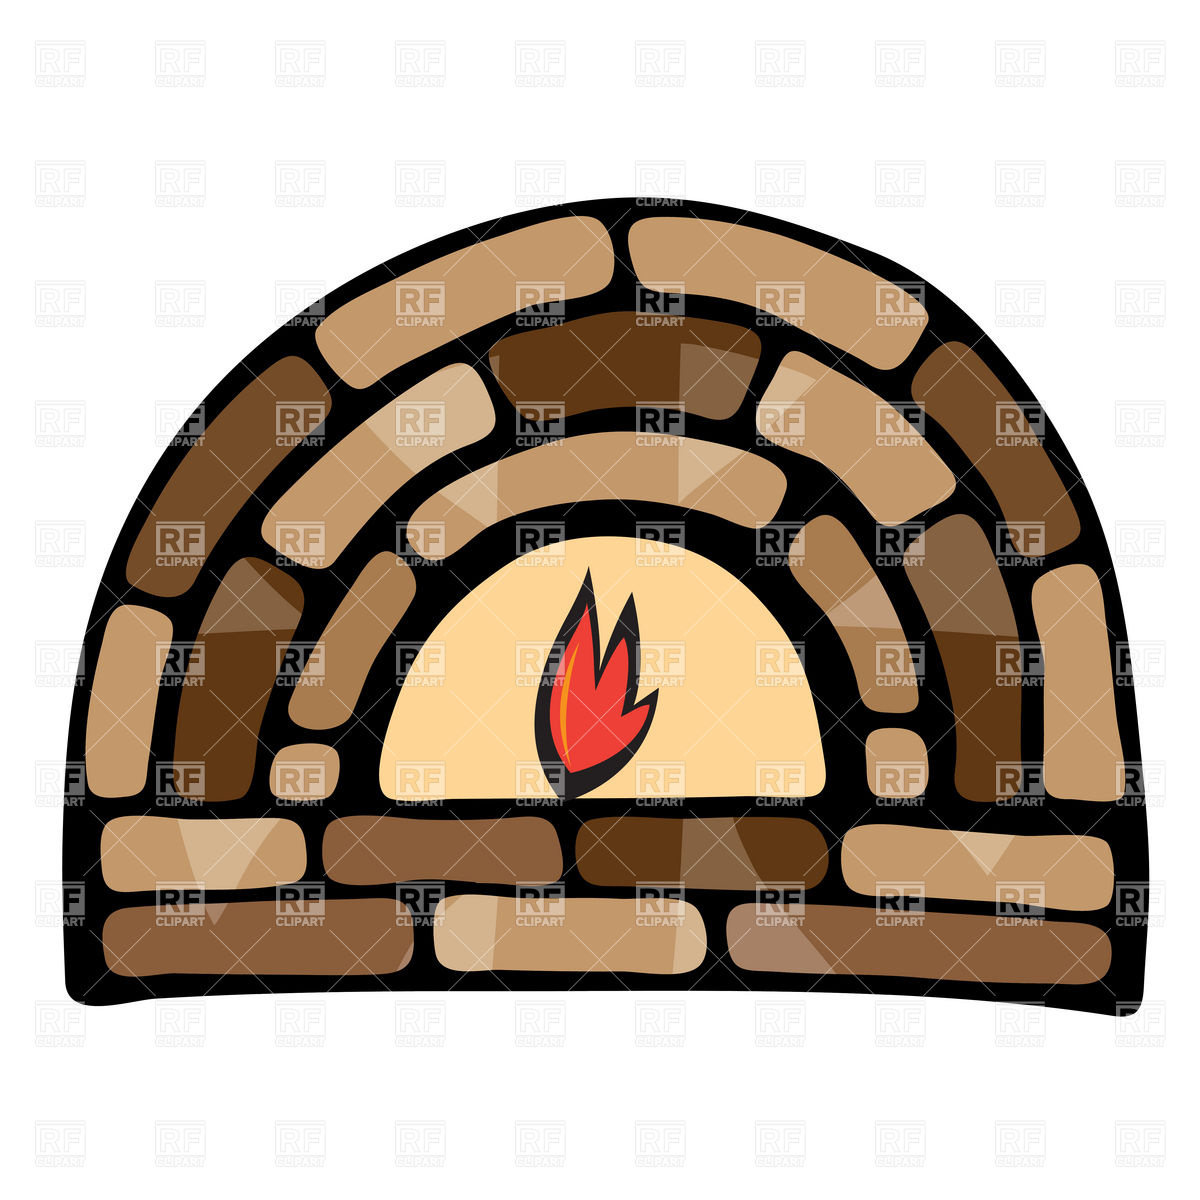 fireplace fire clipart clipart panda free clipart images rh clipartpanda com fireplace clipart black and white fireplace clipart images